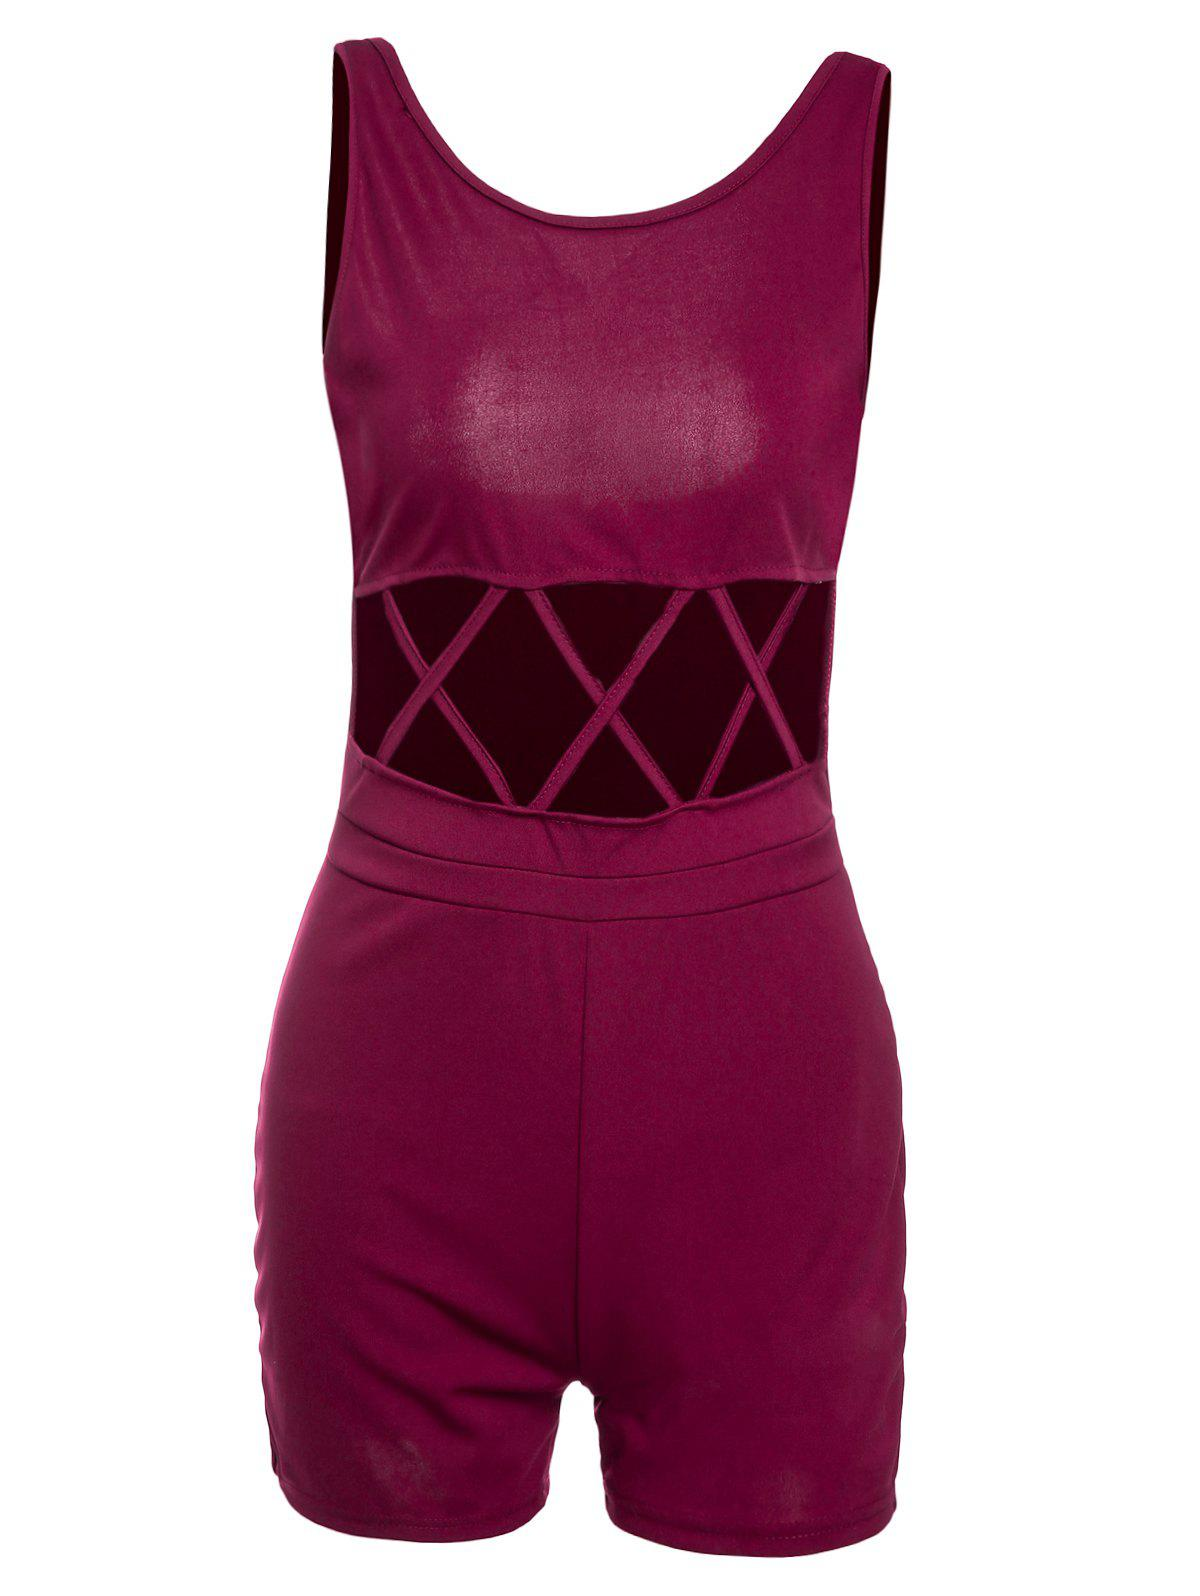 Alluring Hollow Out Scoop Neck Sleeveless Women's Romper - WINE RED M